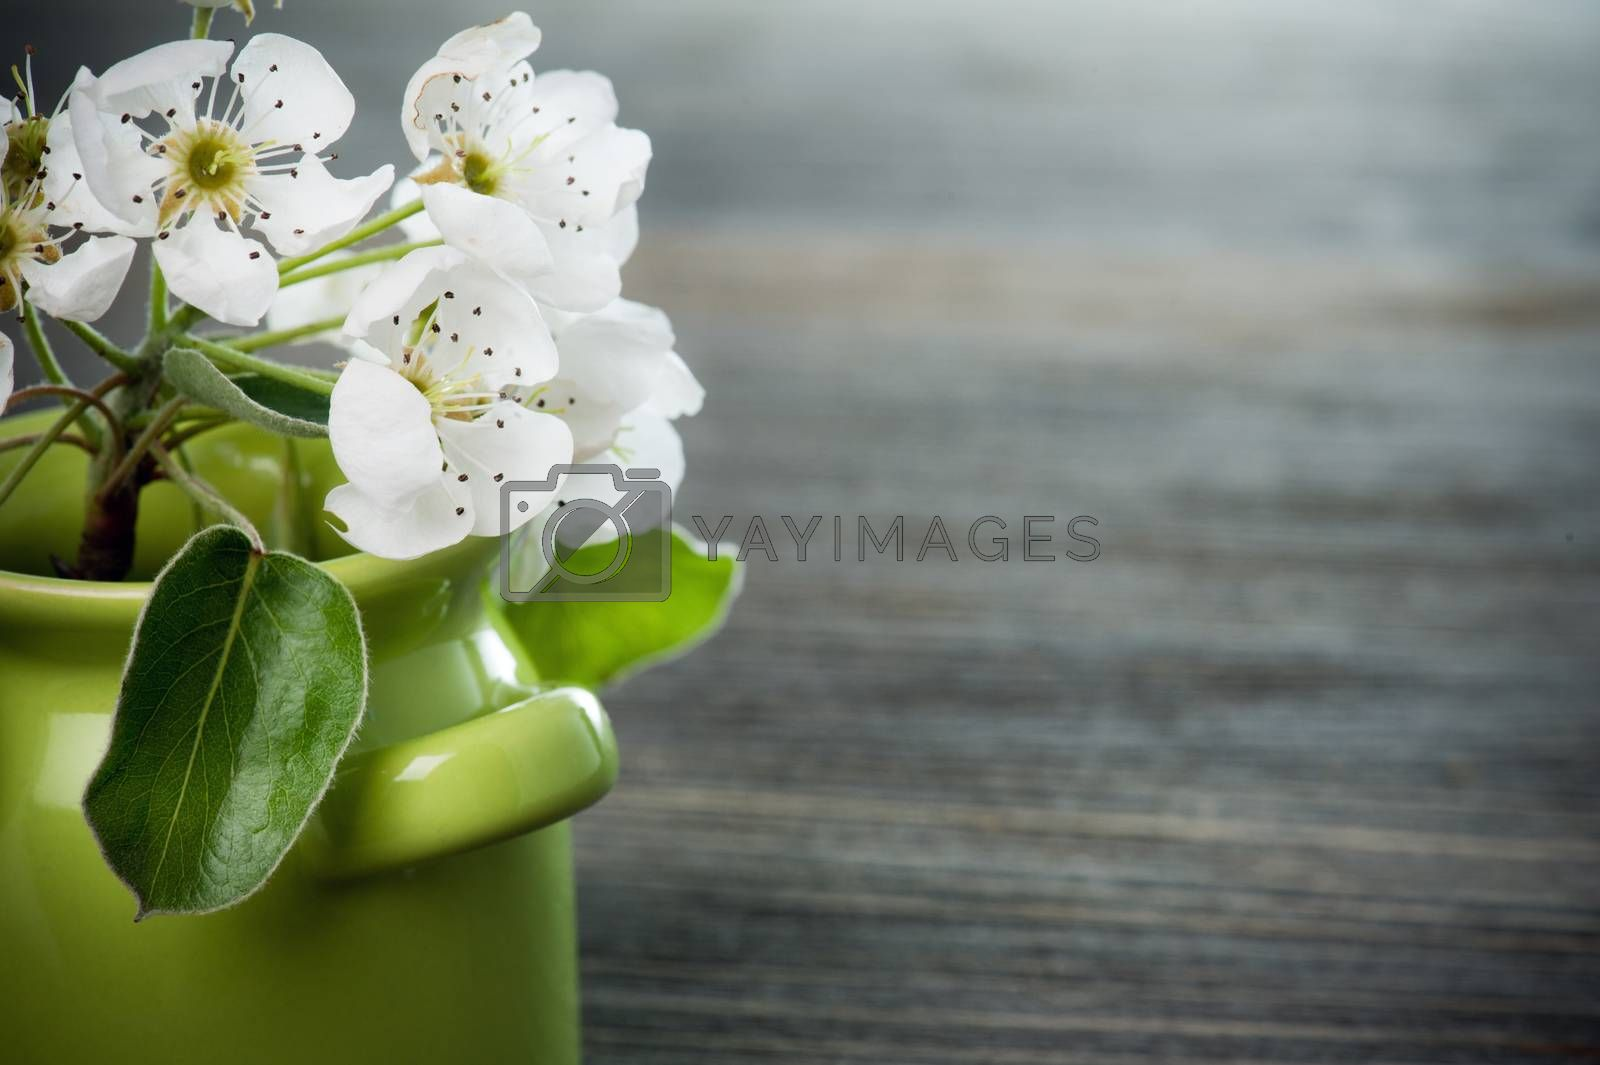 White cherry blossom in a green pot on dark wooden background